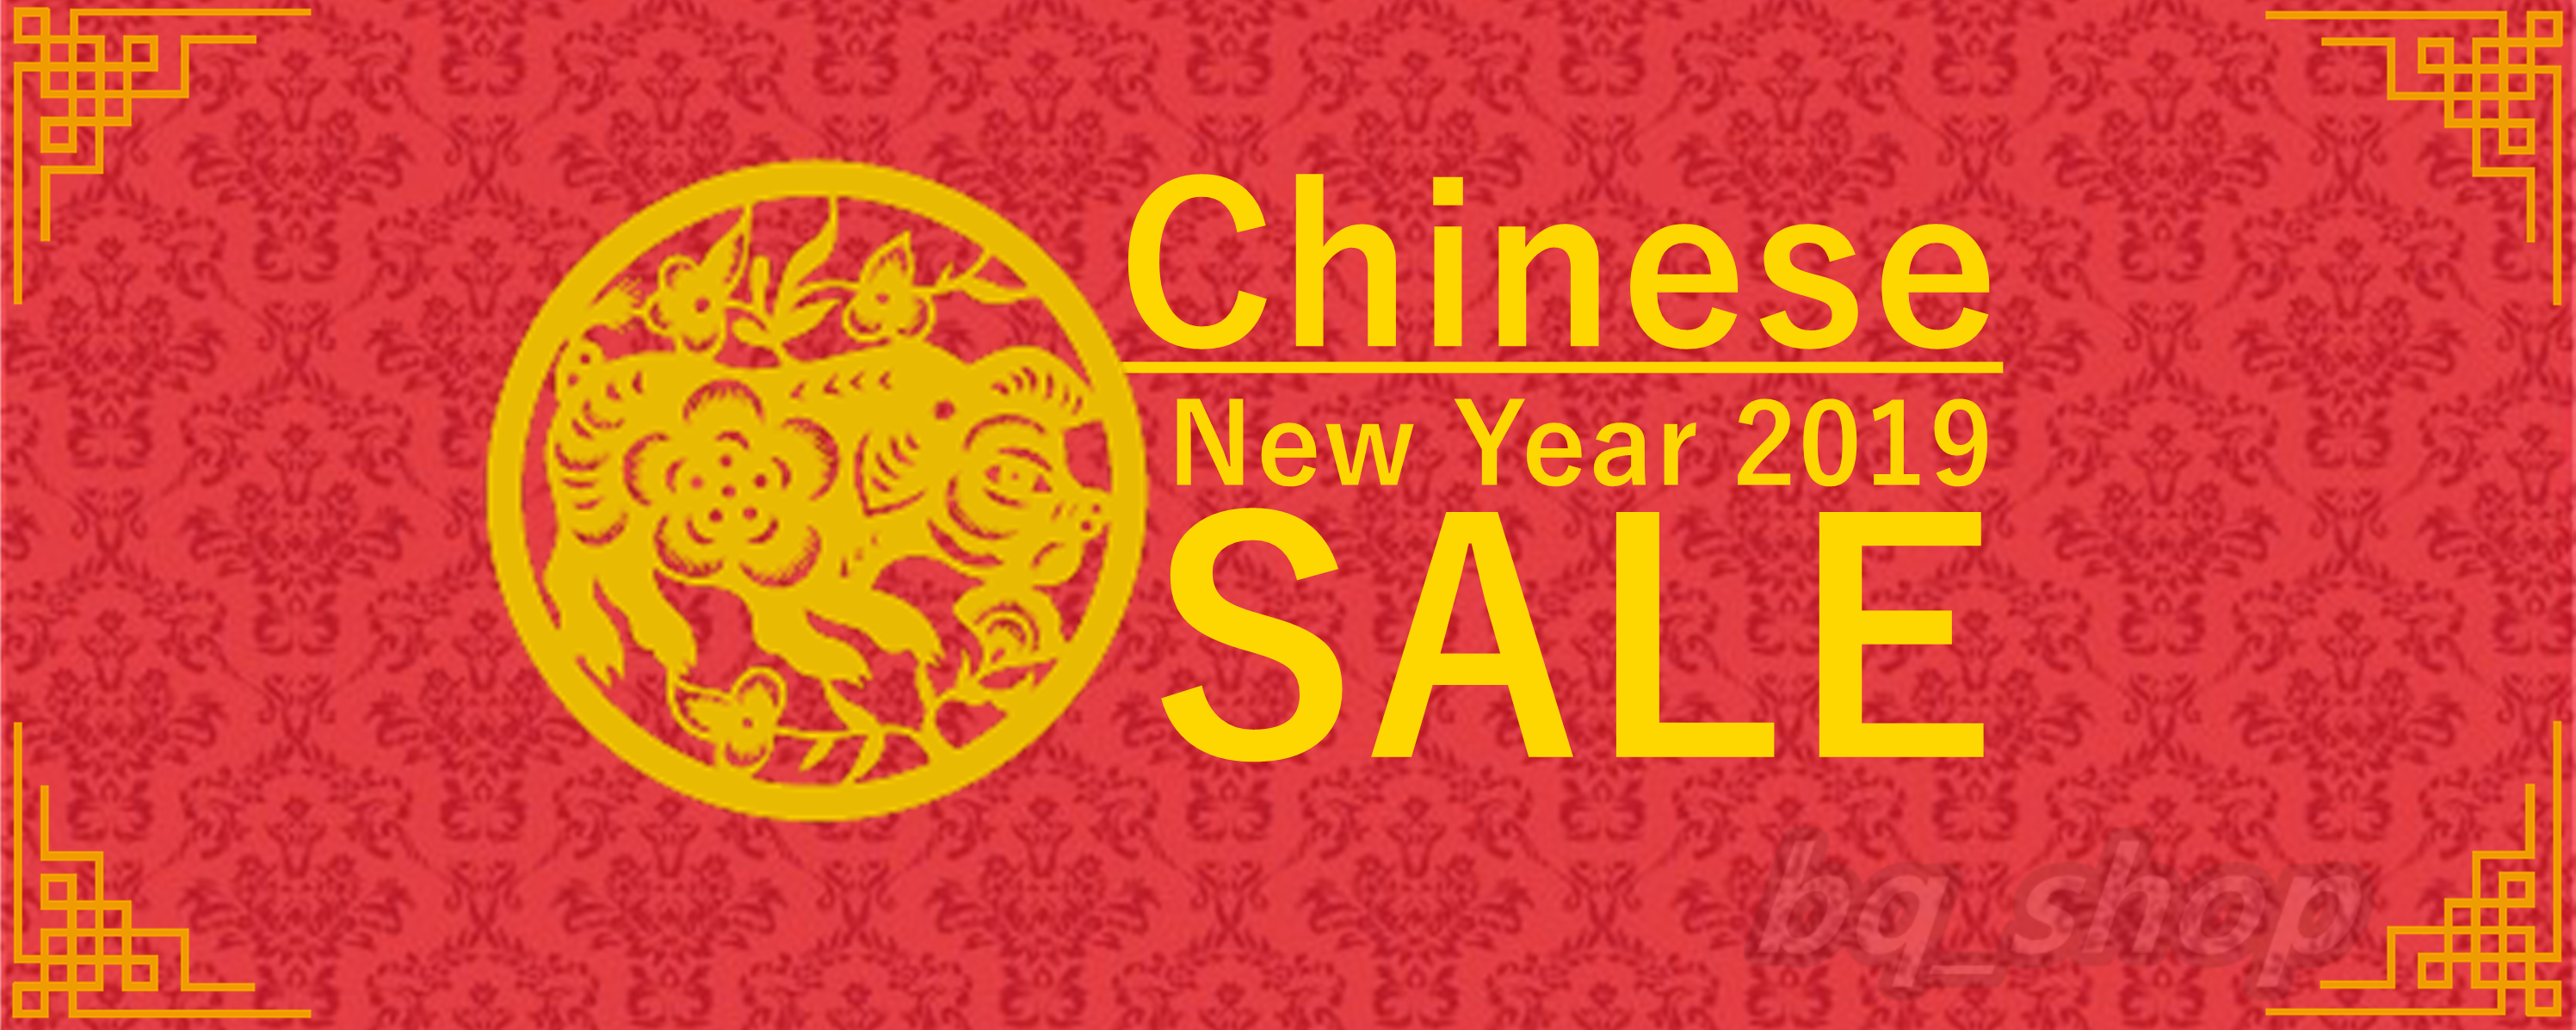 chinese-new-year-2019-sale-.png